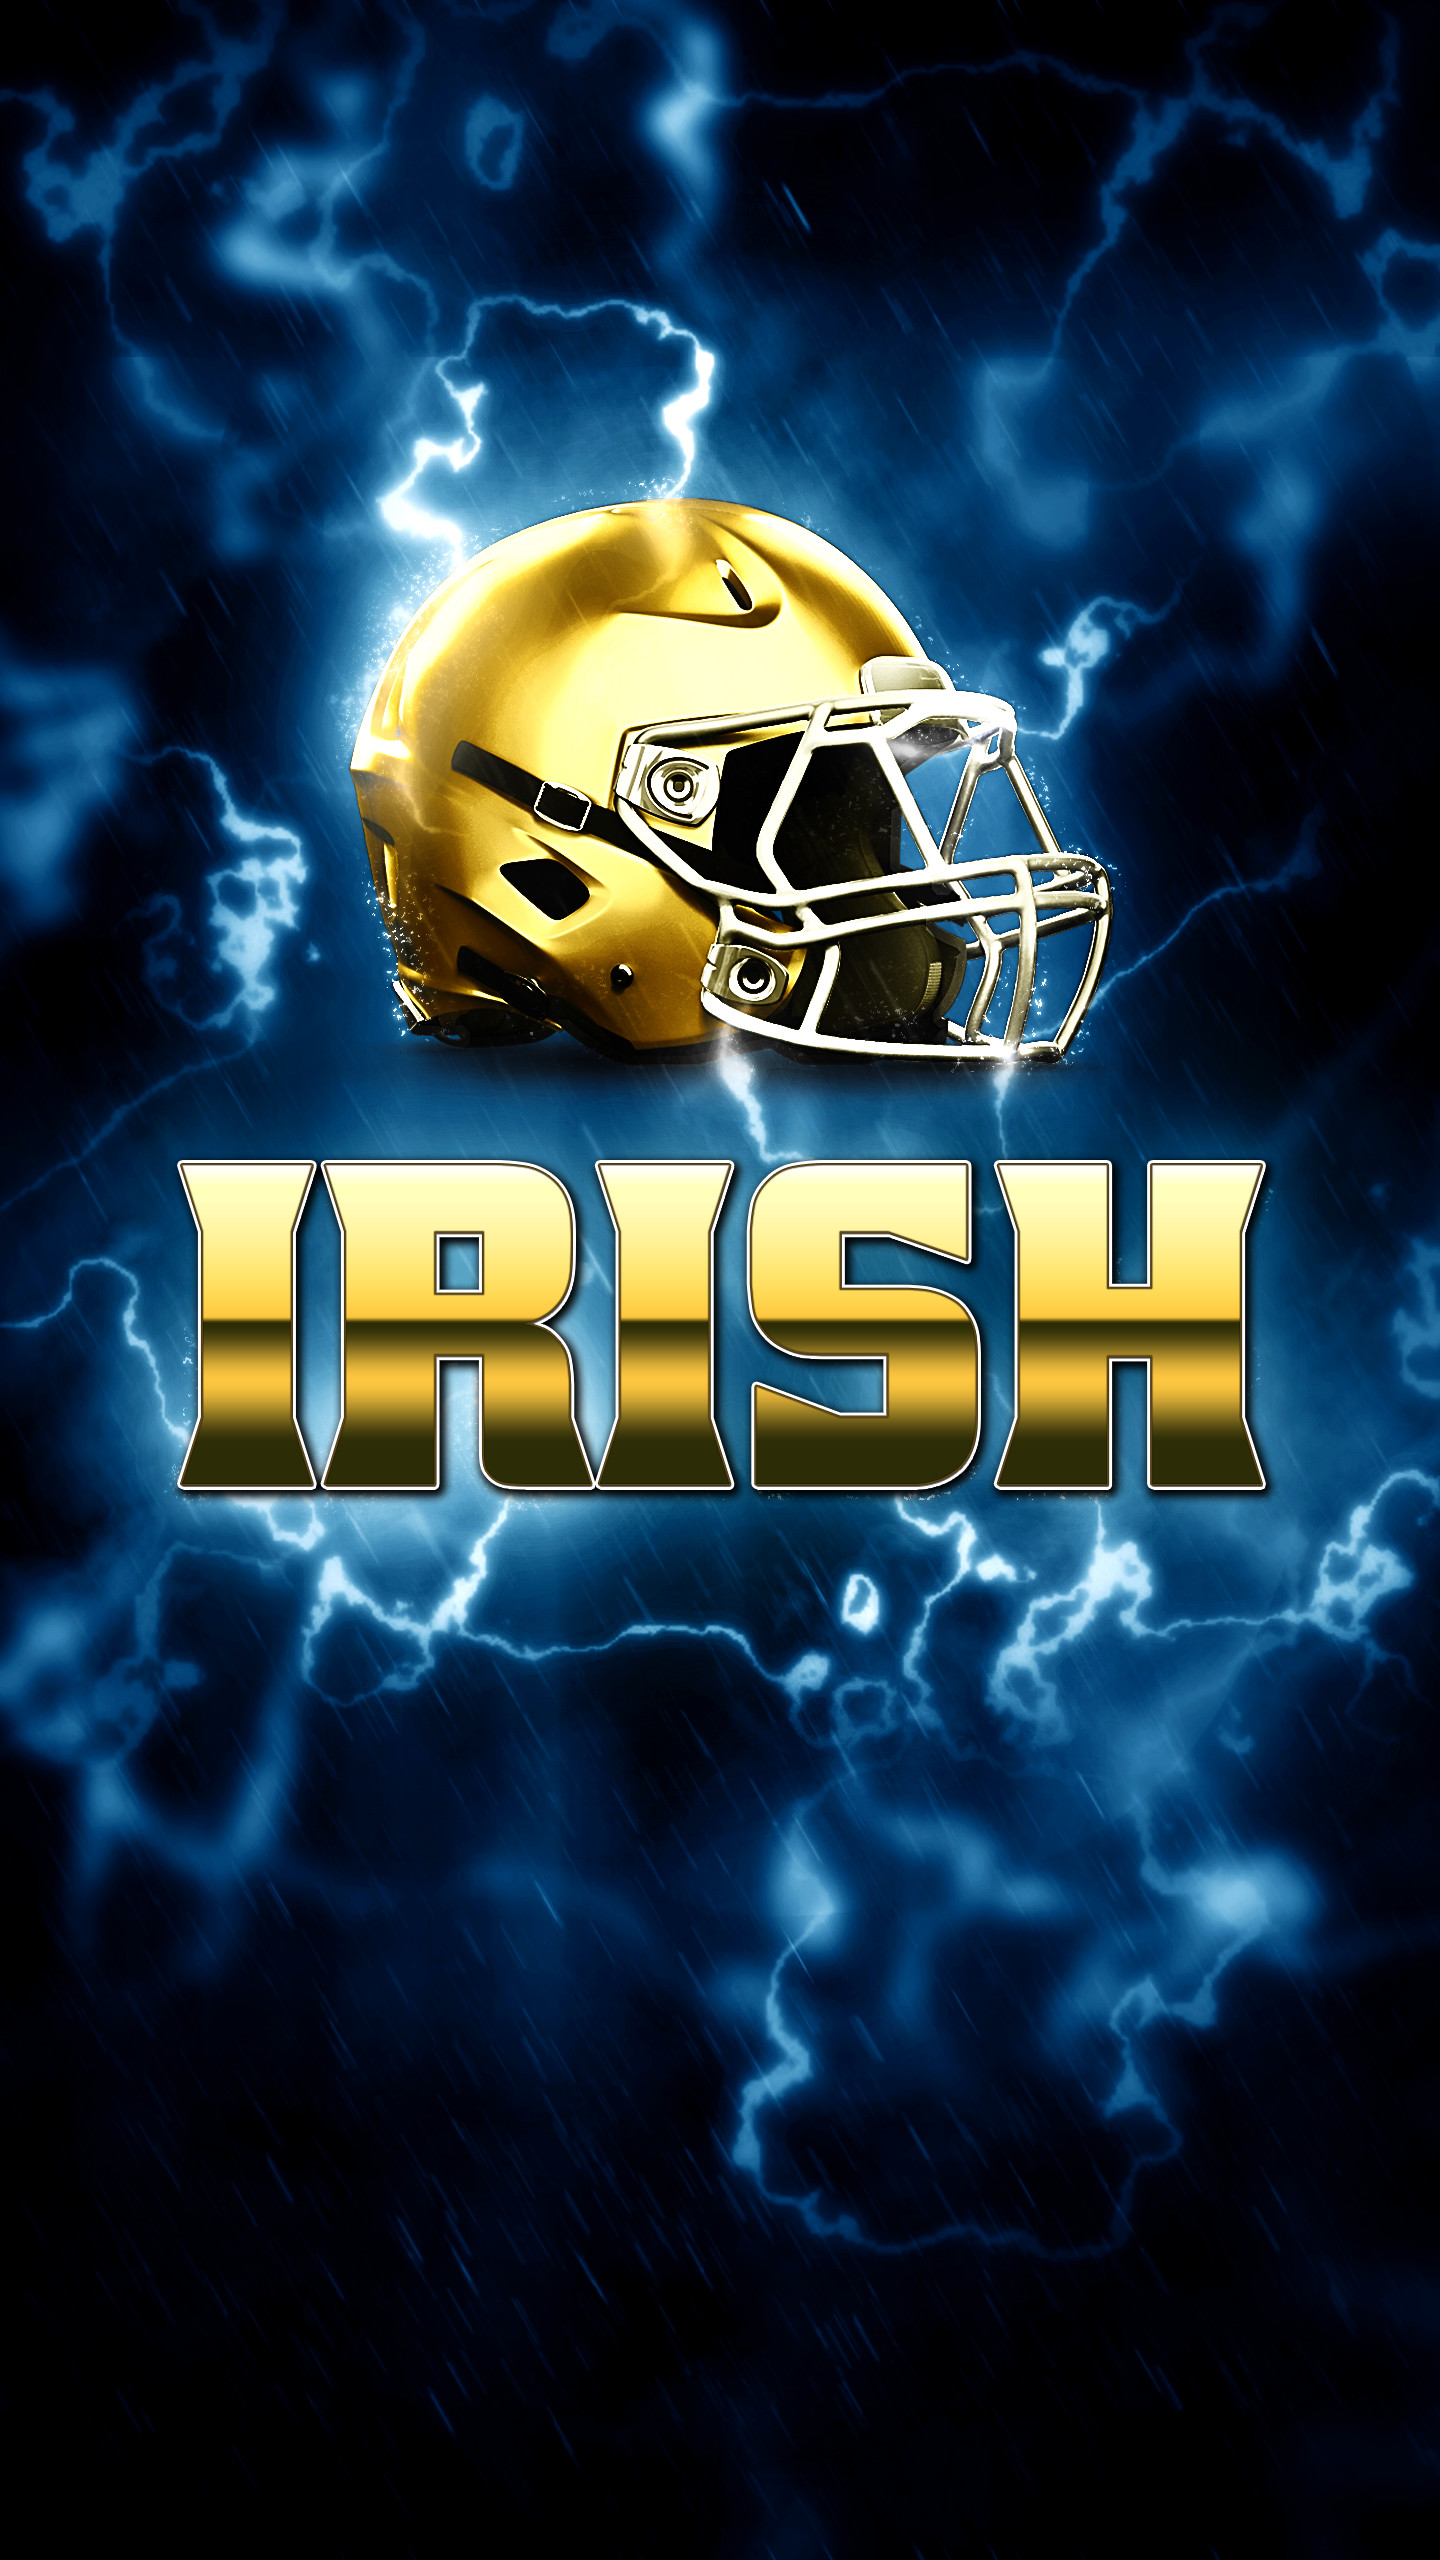 Notre Dame Football Iphone Wallpaper 65 Images